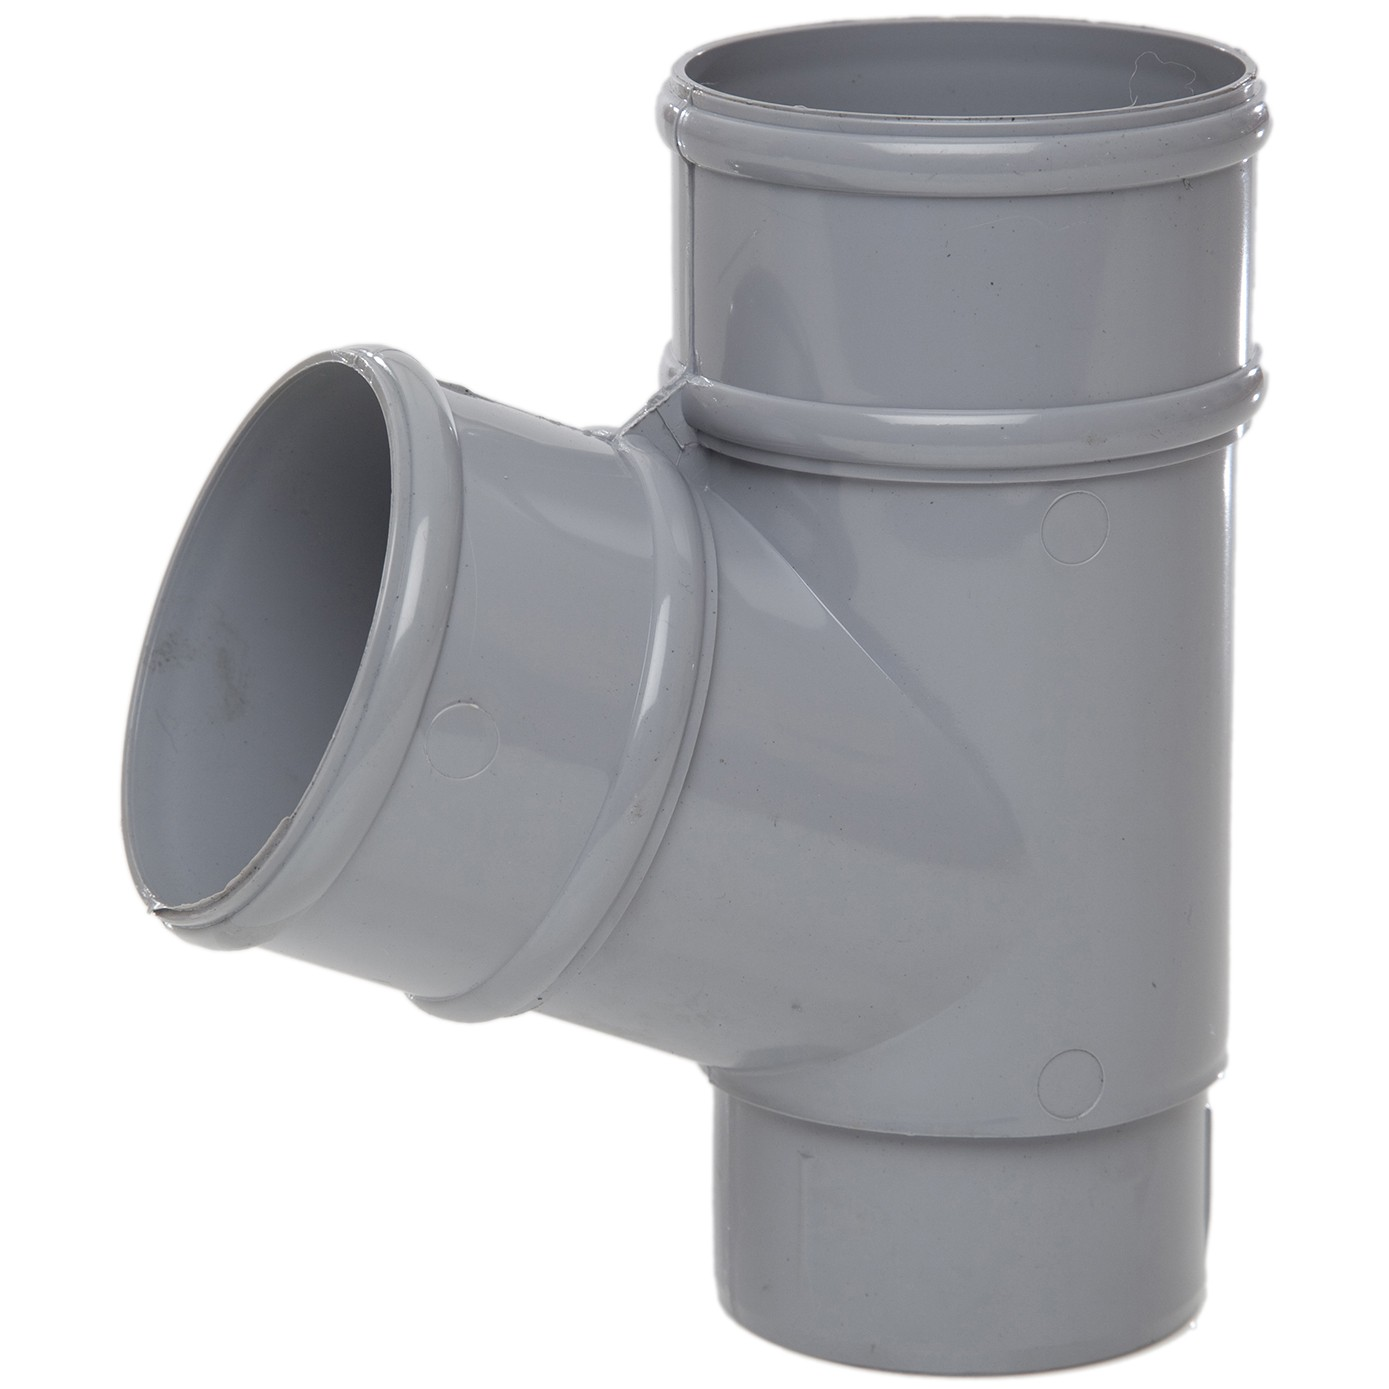 Polypipe 68mm Round Down Pipe 112.5 Degree Branch - Grey